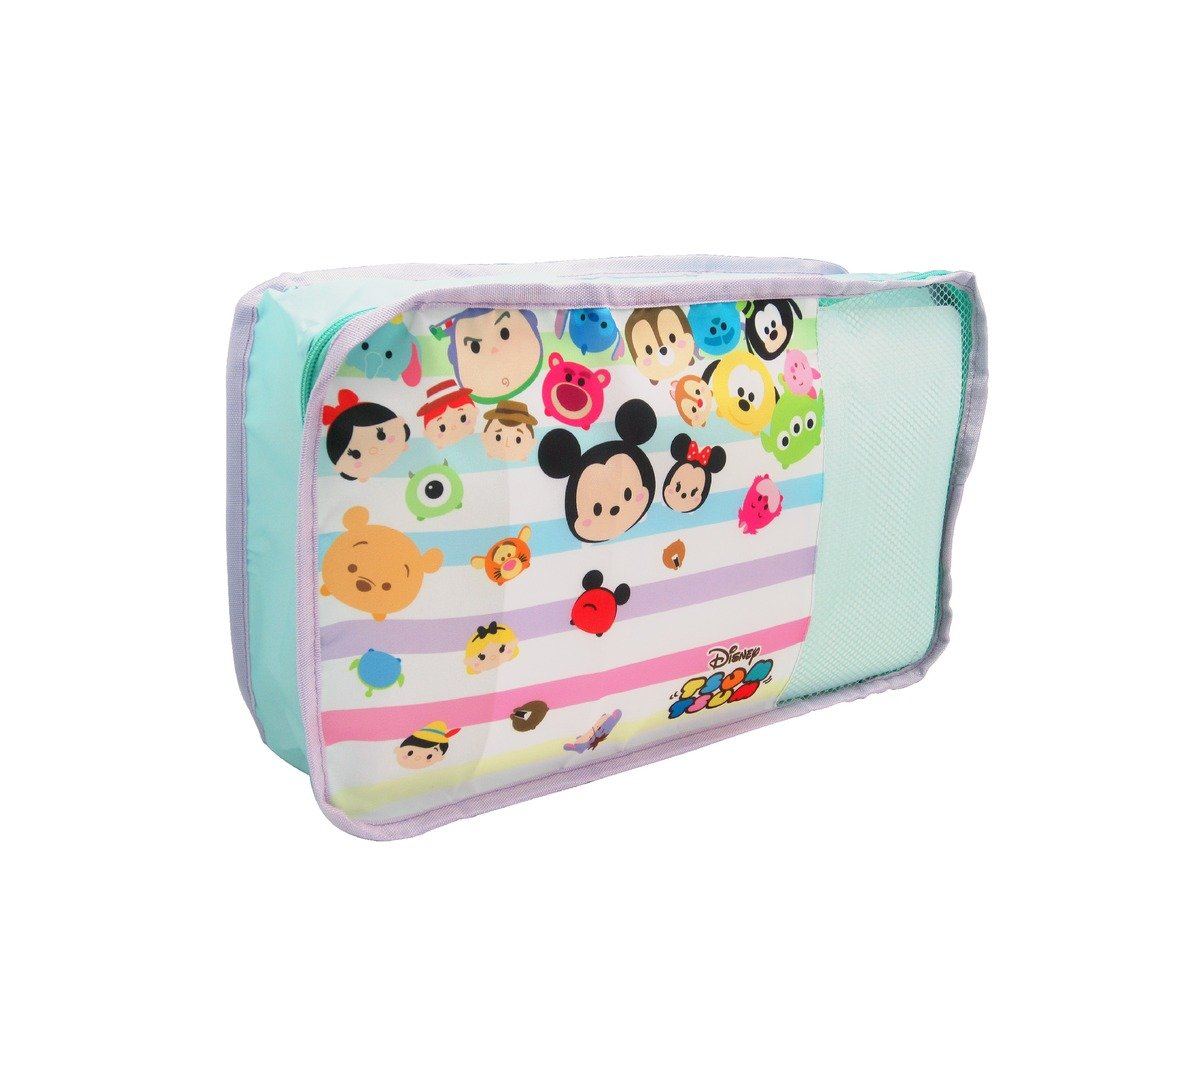 迪士尼DisneyStorage Bag (S)--Green